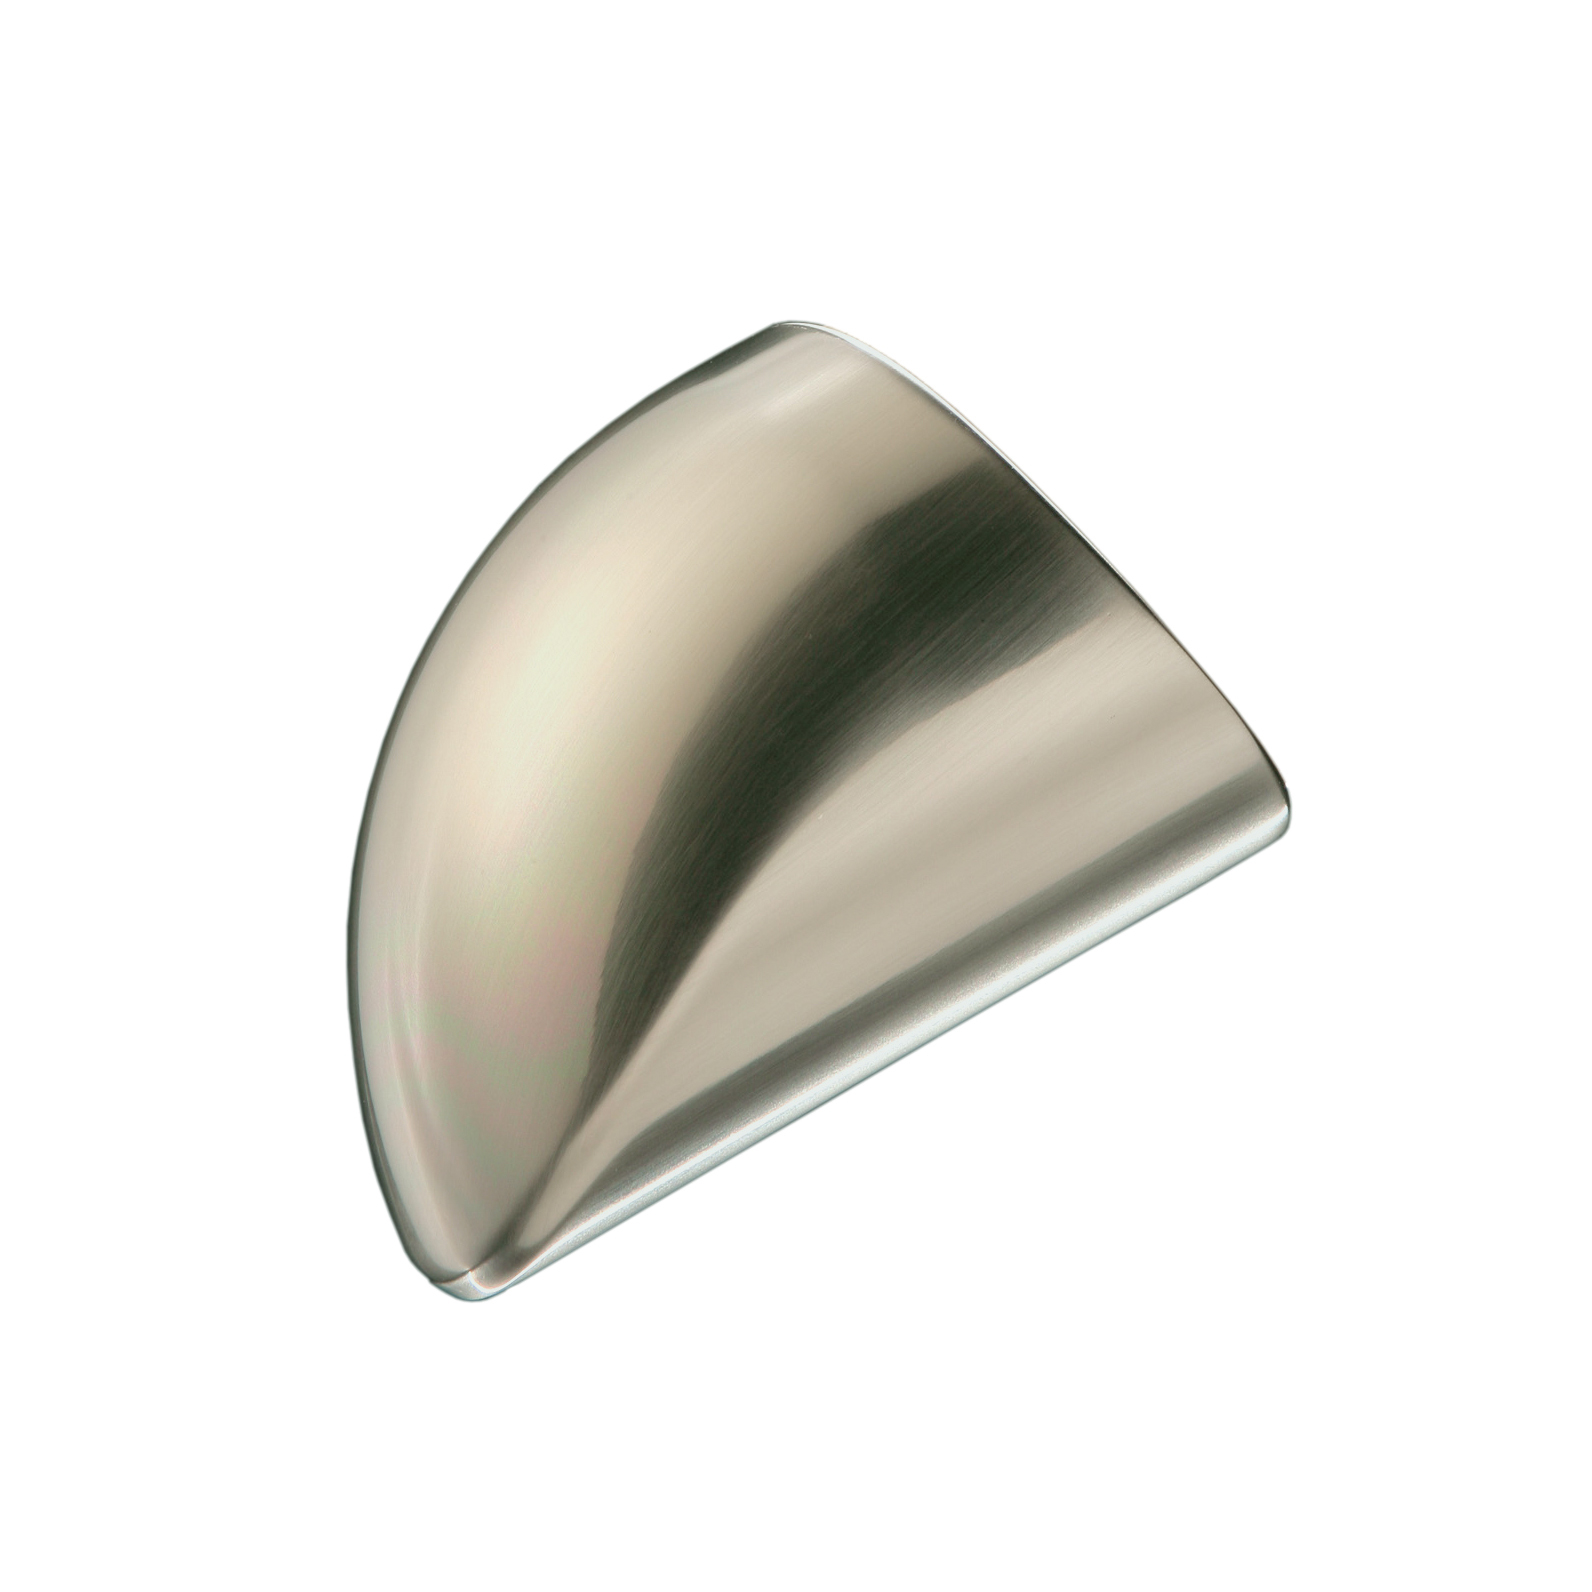 1 Fusion Wall Handrail End Cap Brushed Nickel Effect